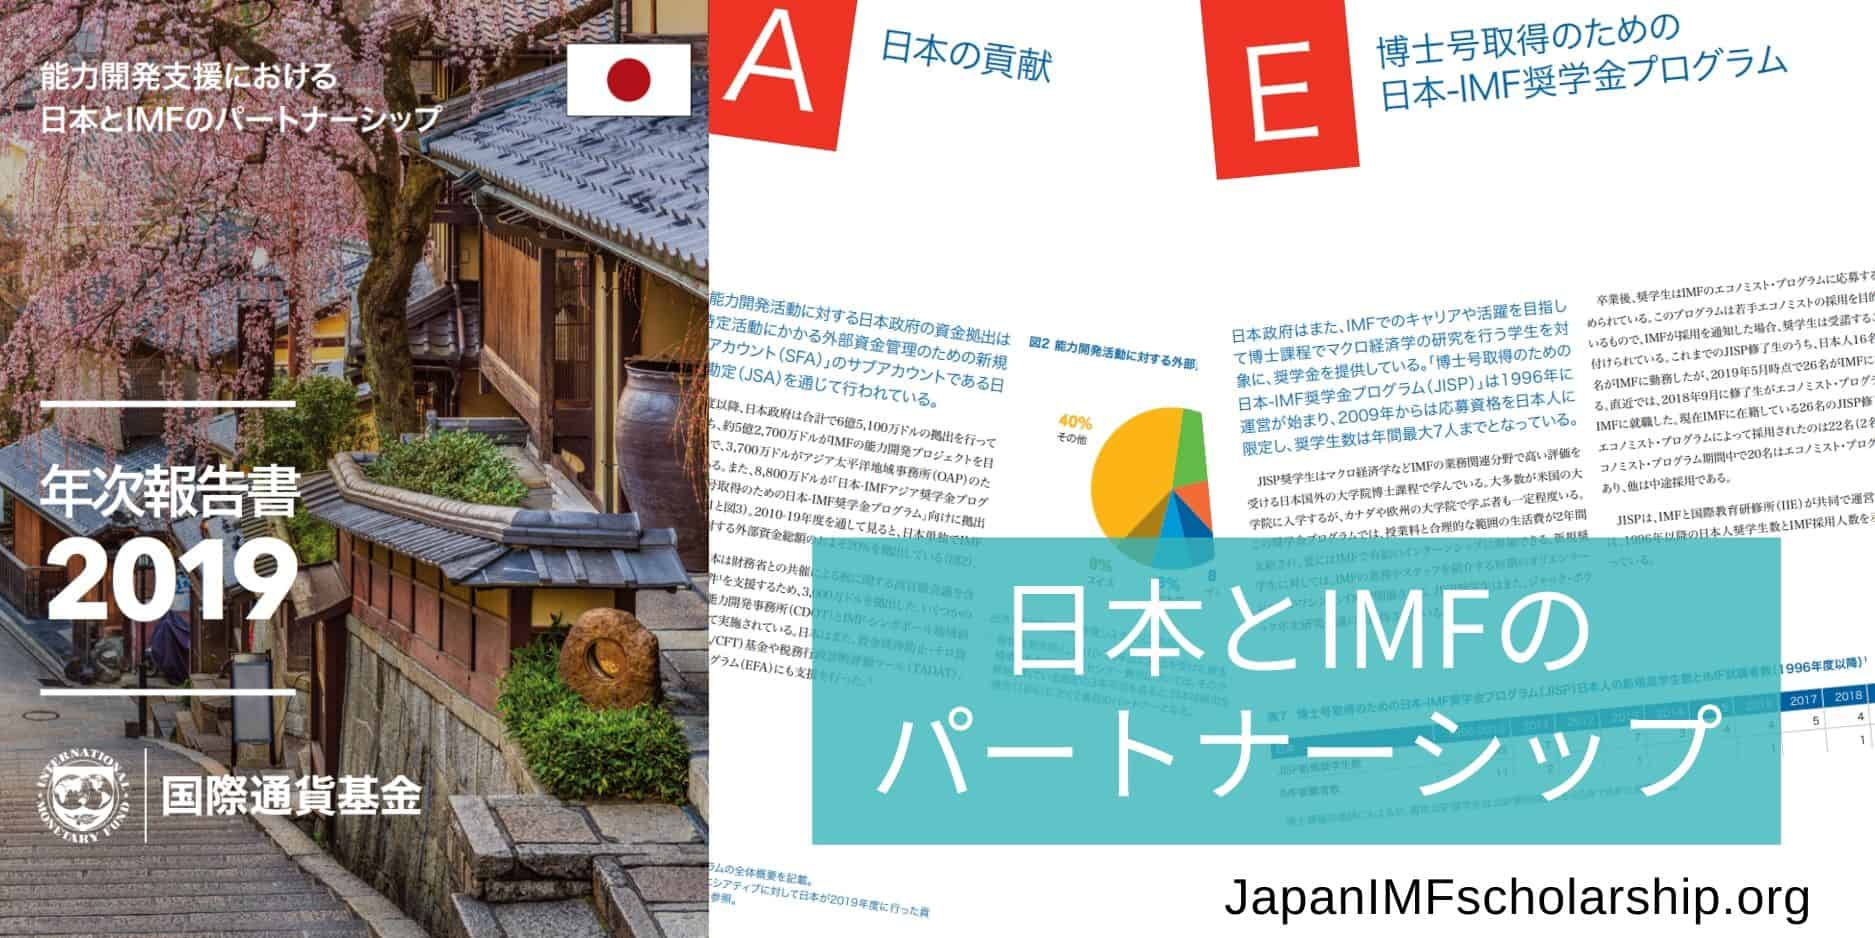 _jisp web-fb imf annual report 2019 of japan and imf partnership